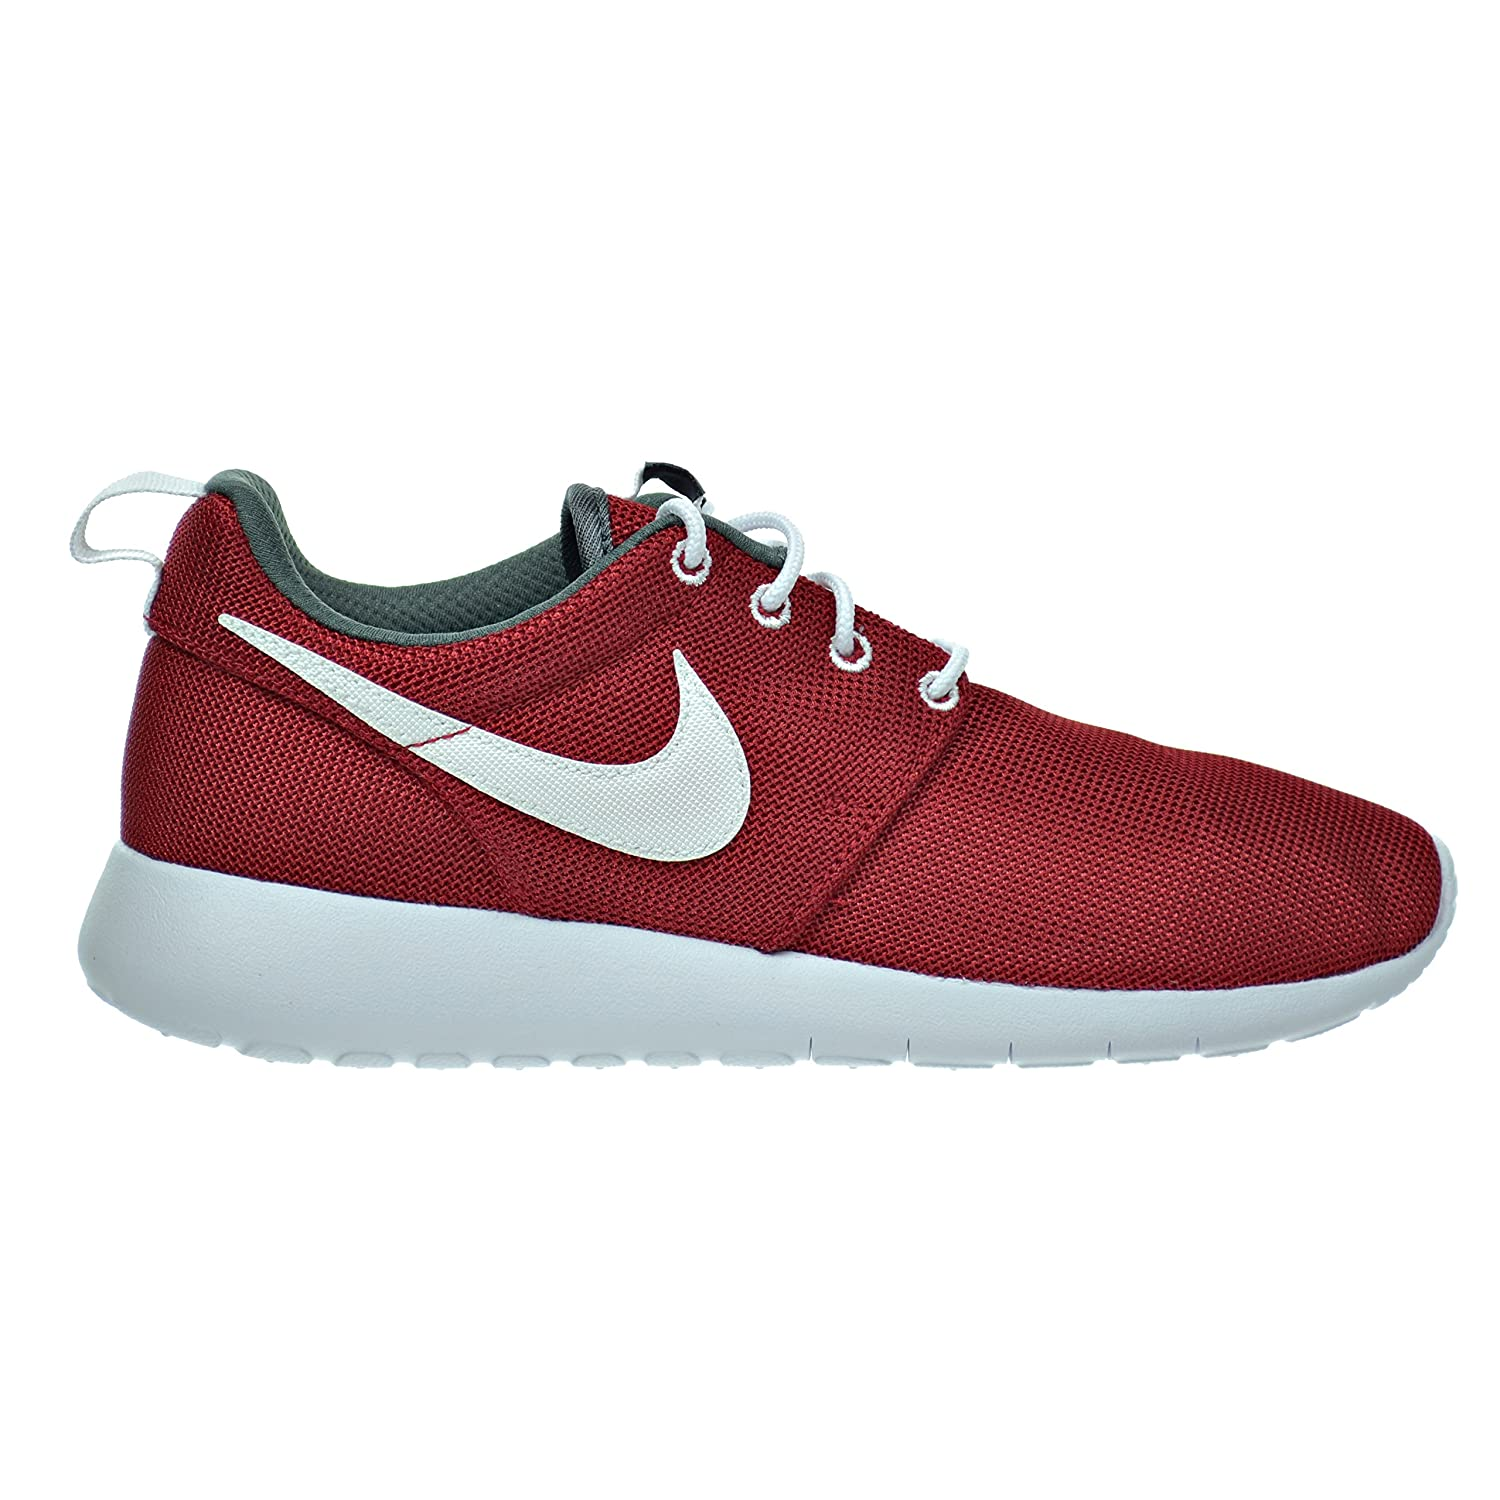 a3ce171f3c74 Amazon.com  Nike Roshe One (GS) Big Kid s Shoes Gym Red White Dark Grey  599728-603  Shoes